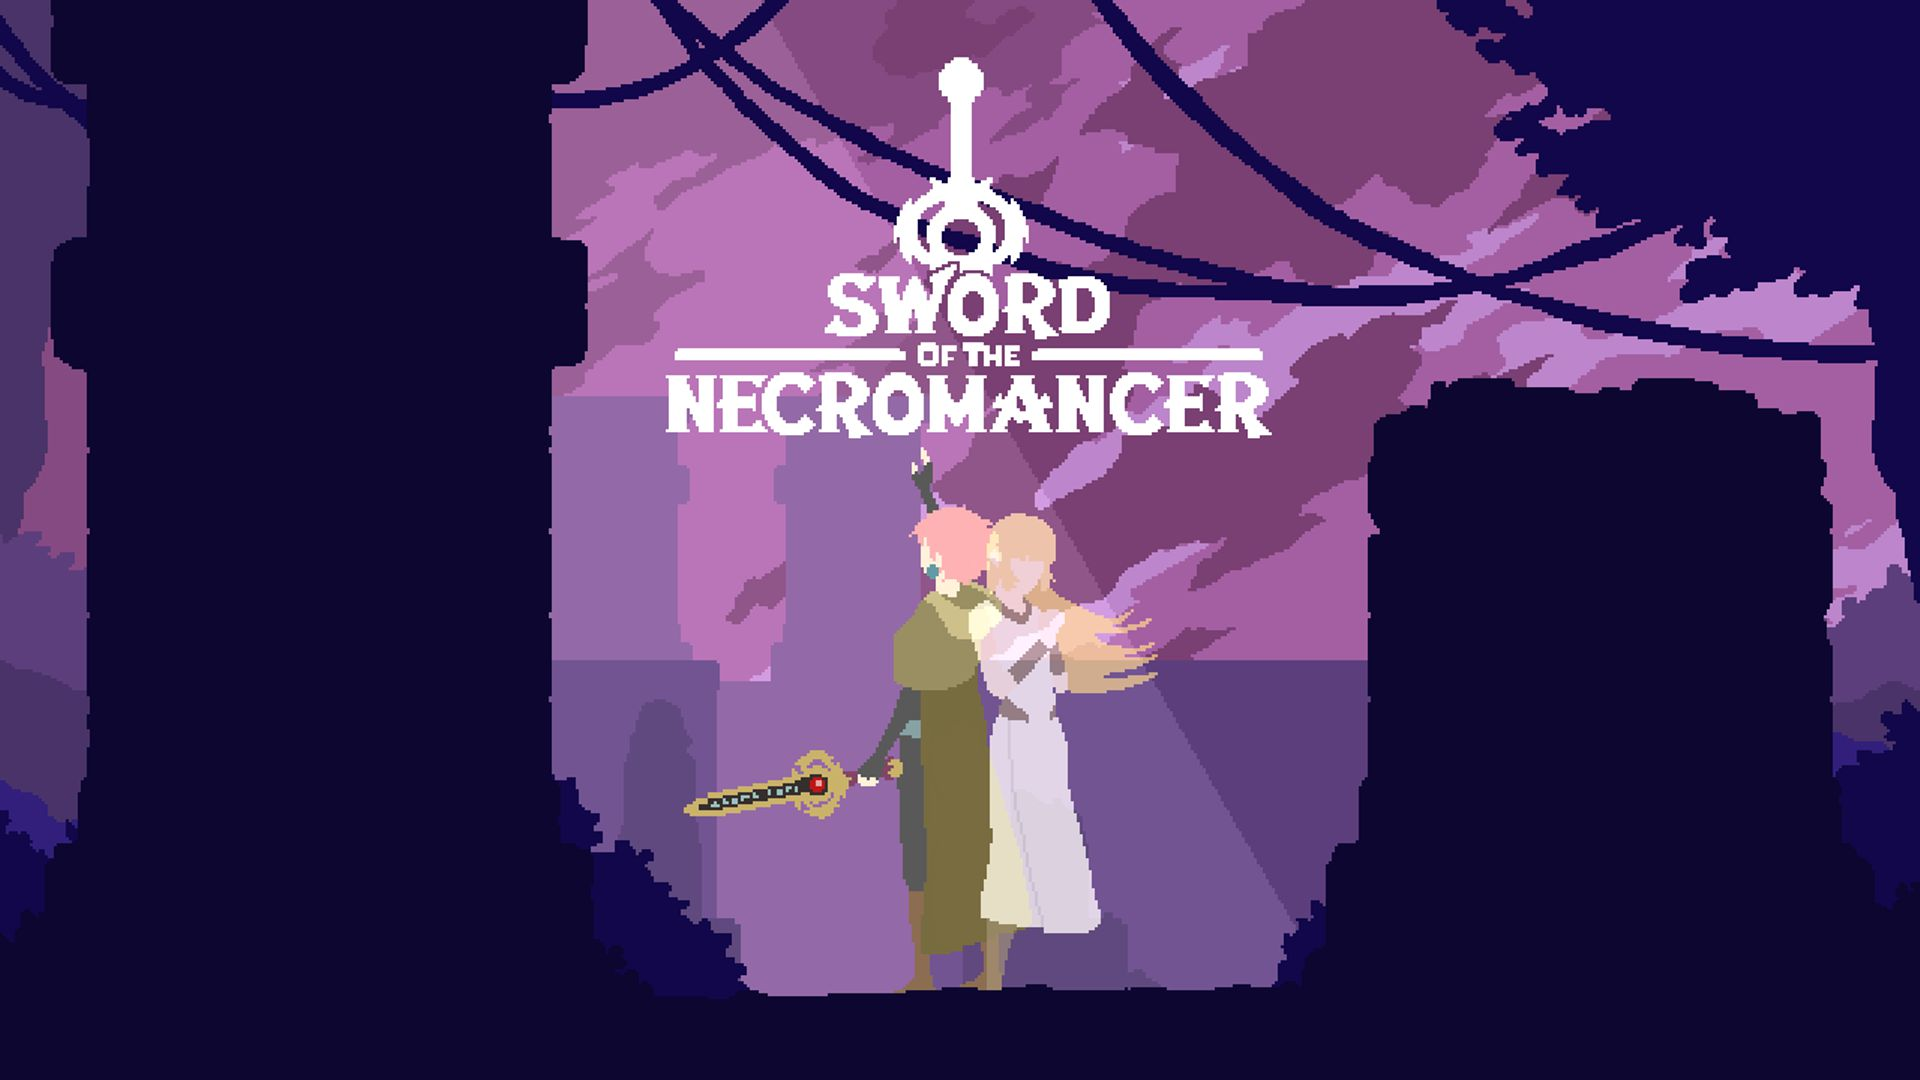 Sword of the Necromancer Principal